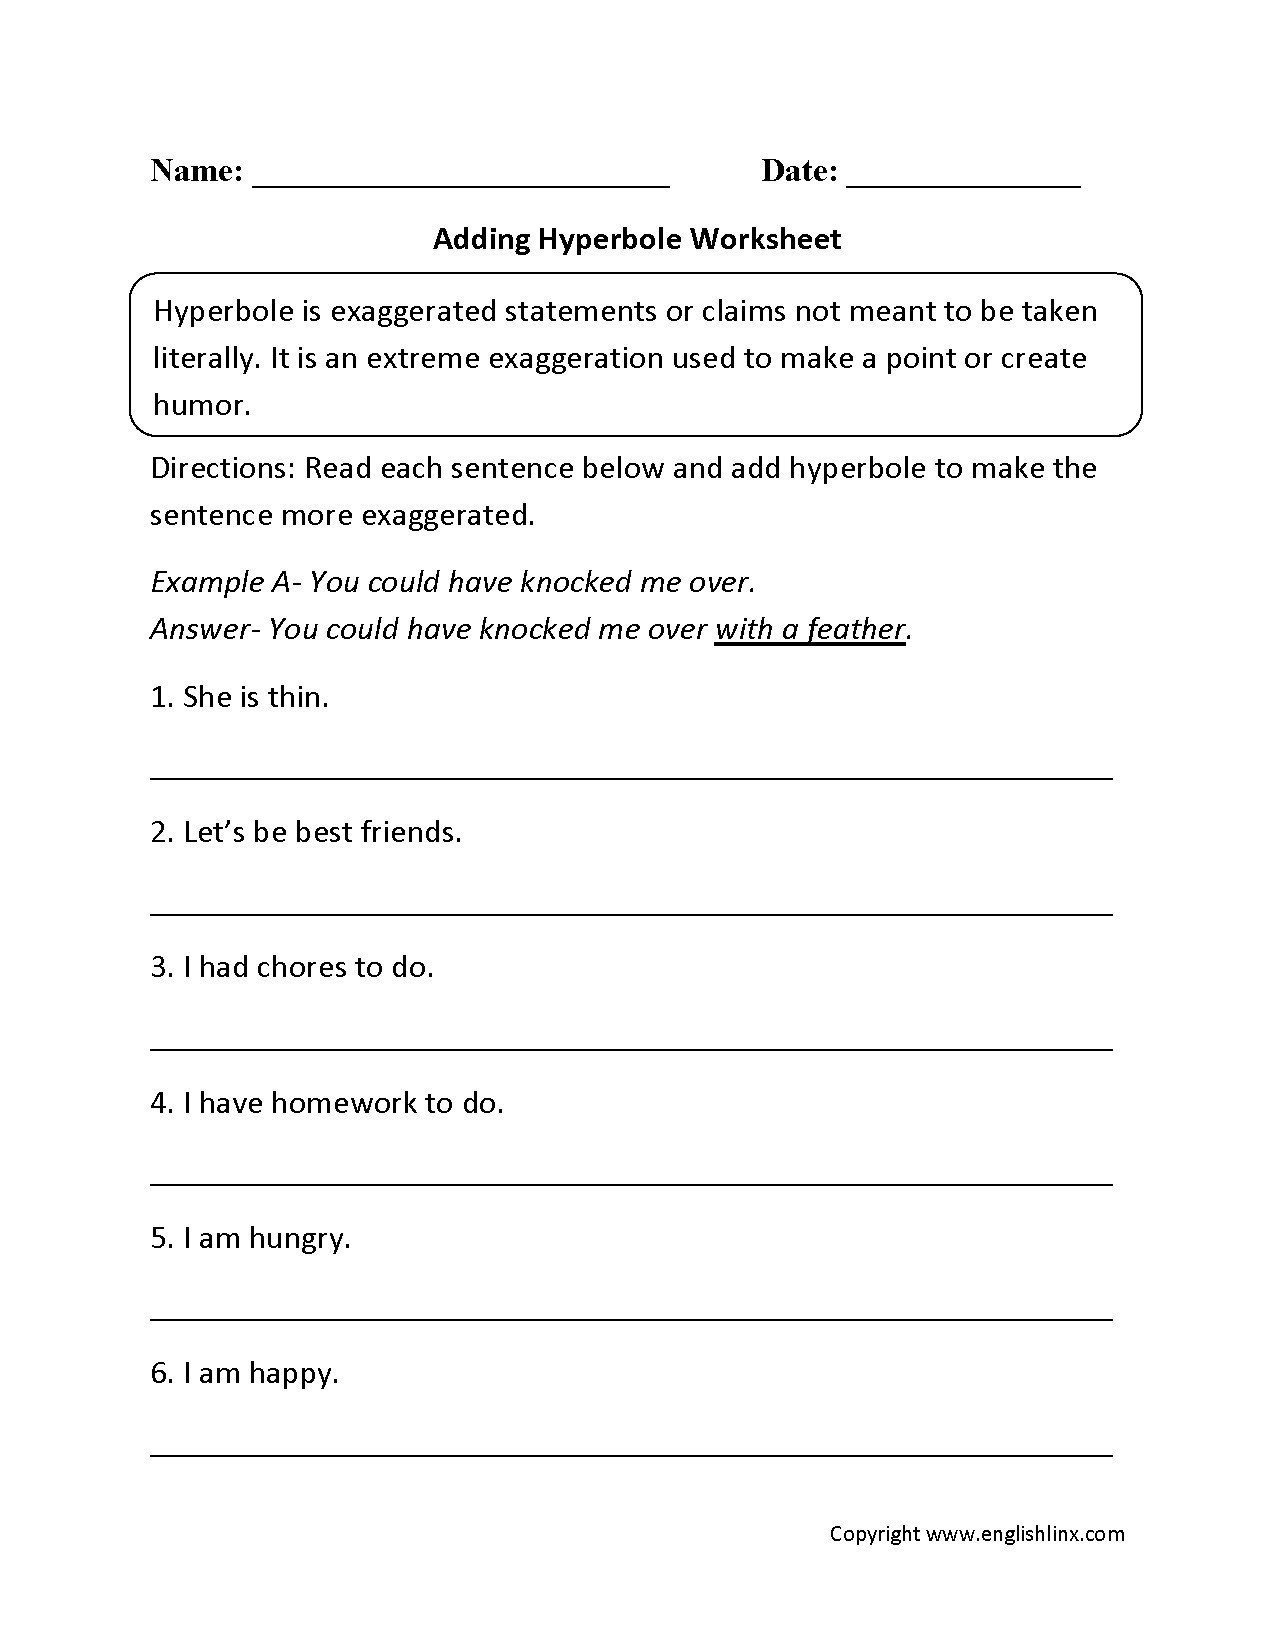 Worksheet Generator Area   Livinghealthybulletin To Worksheet Generator